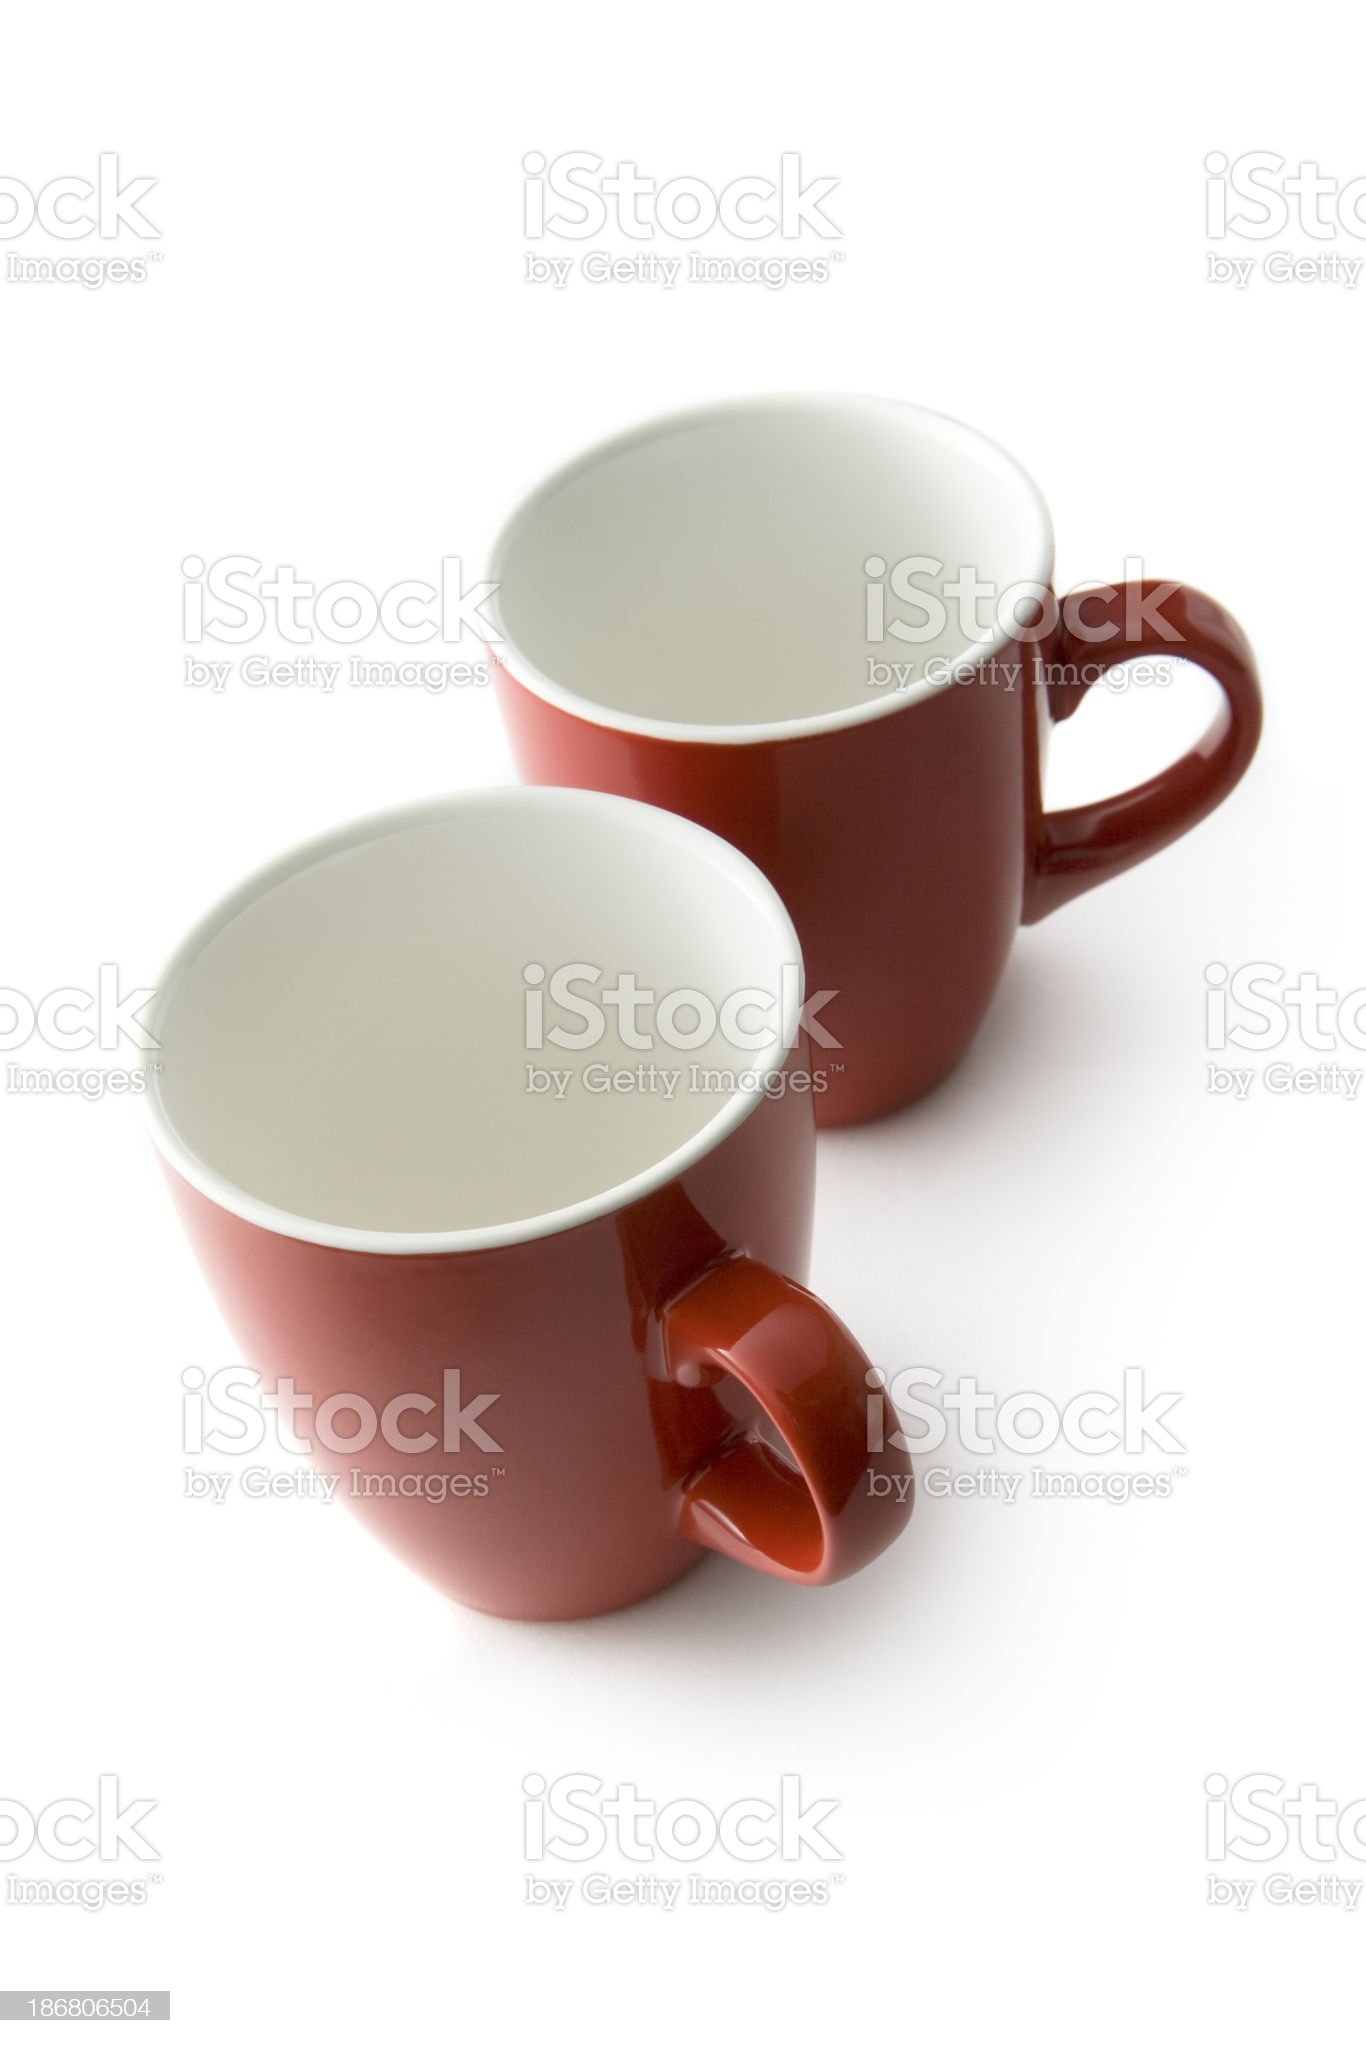 Kitchen Utensils: Empty Cups royalty-free stock photo